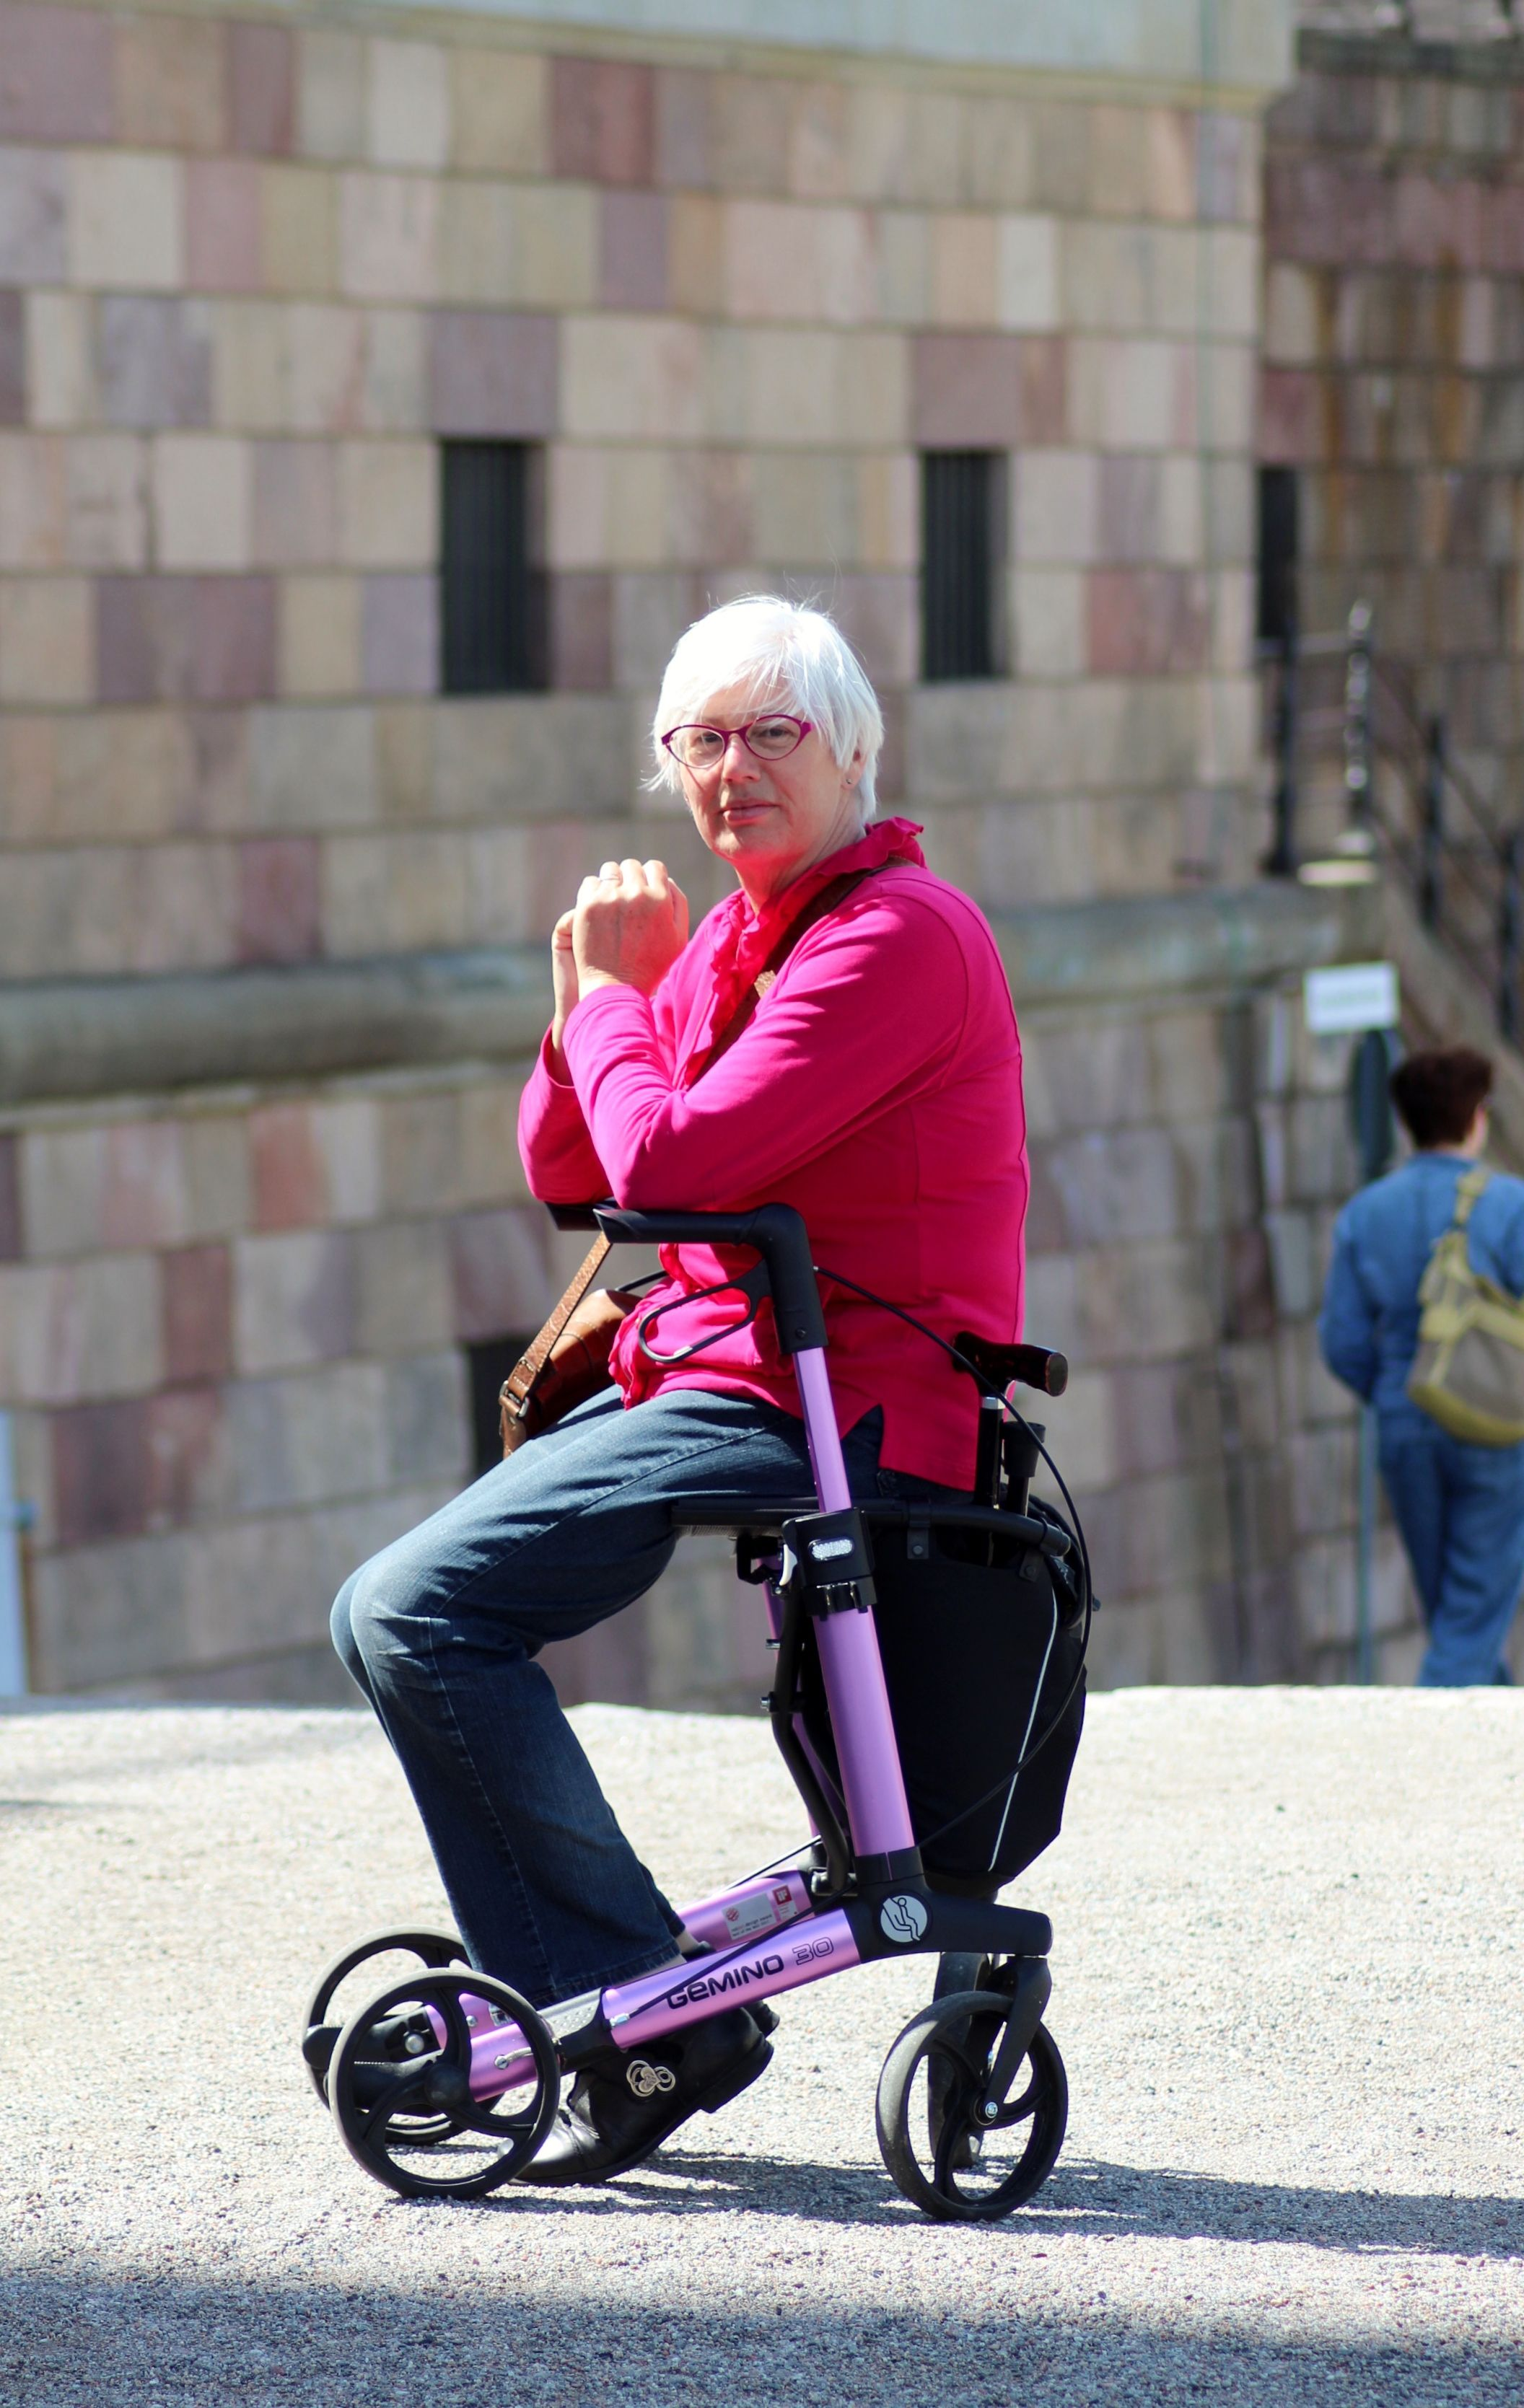 Pin on MOBILITY AIDS